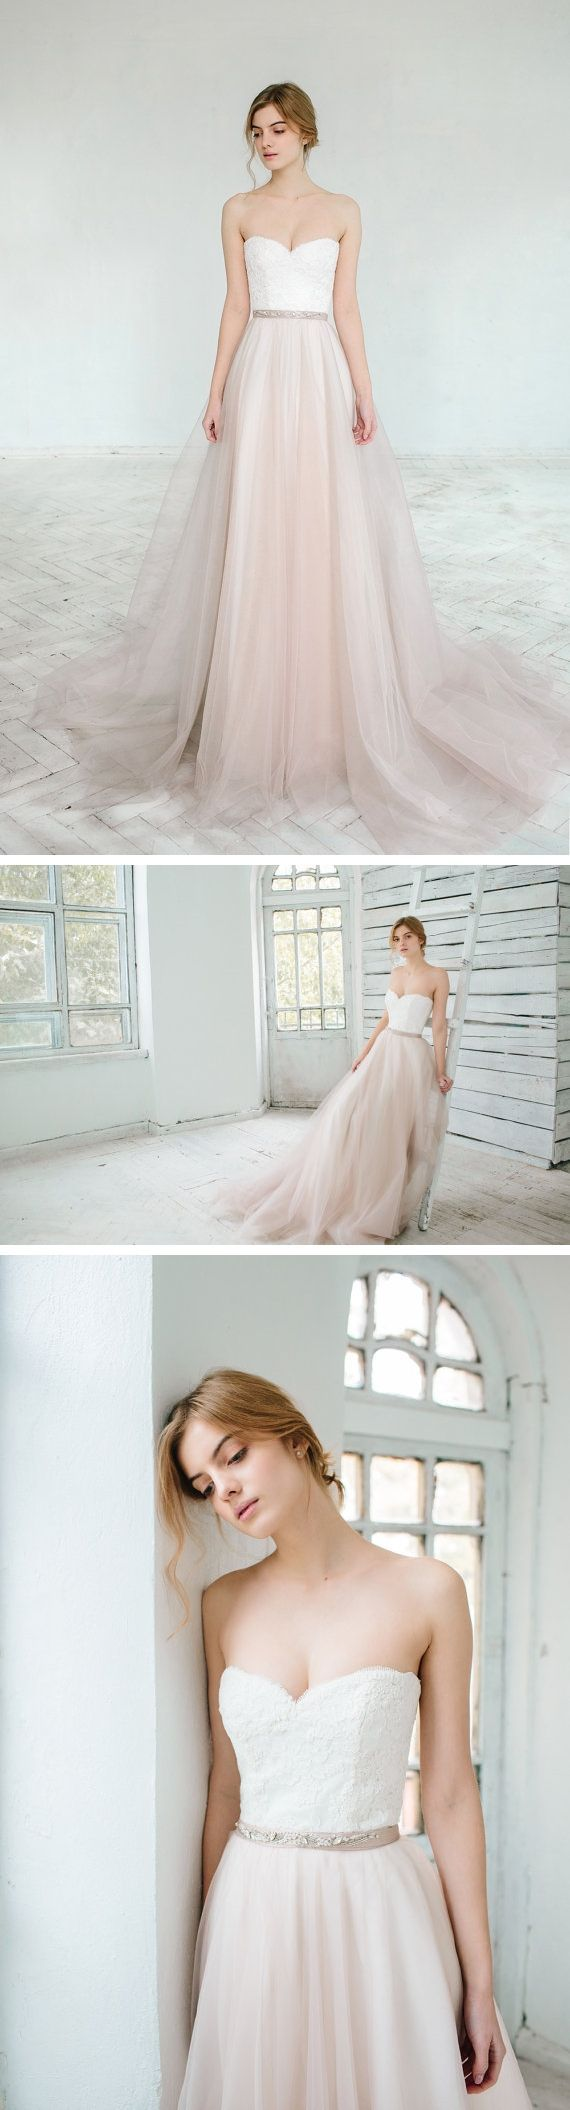 Wedding Dress Of The Week - Paper and Lace